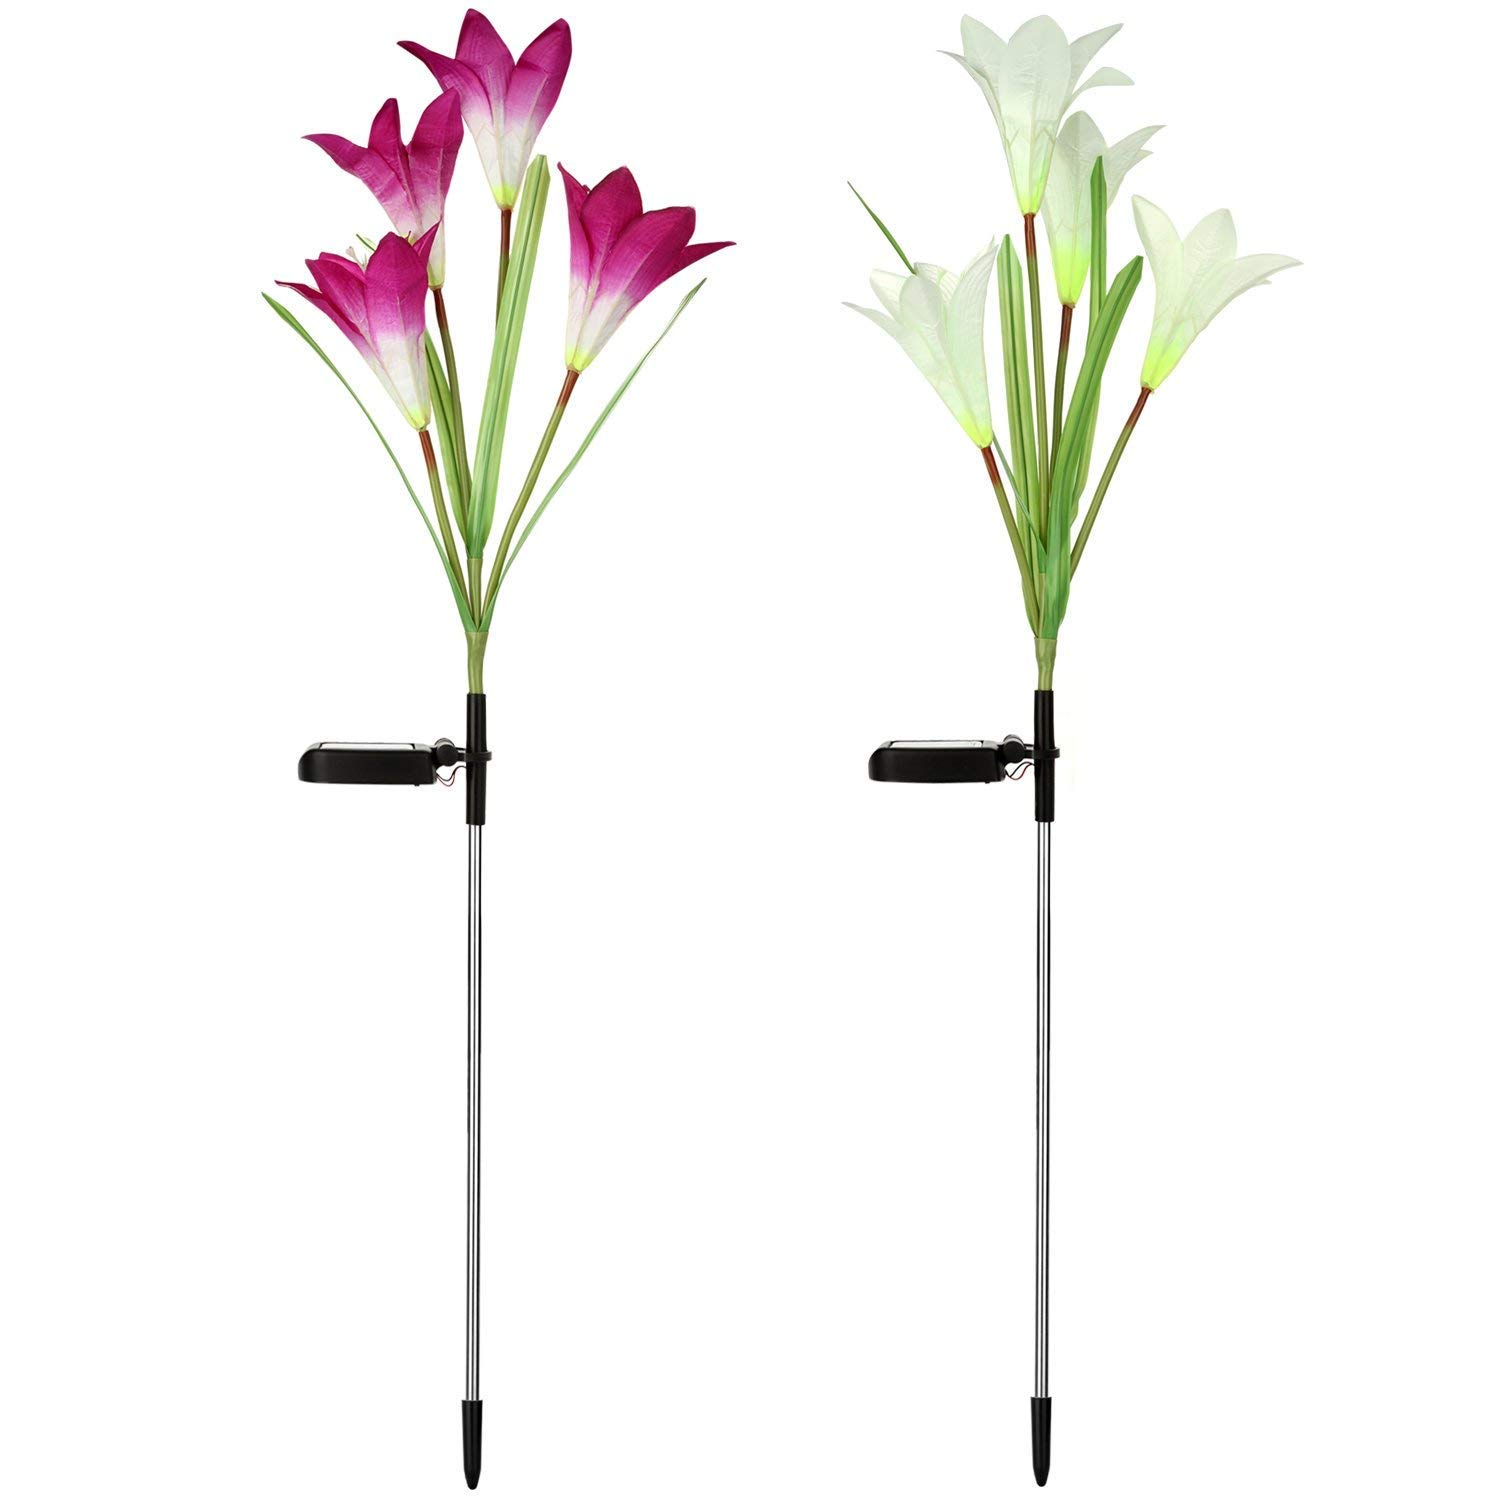 SW SAPPYWOON Outdoor Solar Flower Lights, 2 Packs Solar Garden Stake Lights with 8 Lily Flowers, Multi-Color Changing LED Solar Outdoor Garden Lights for Garden, Patio, Backyard (Purple and White)